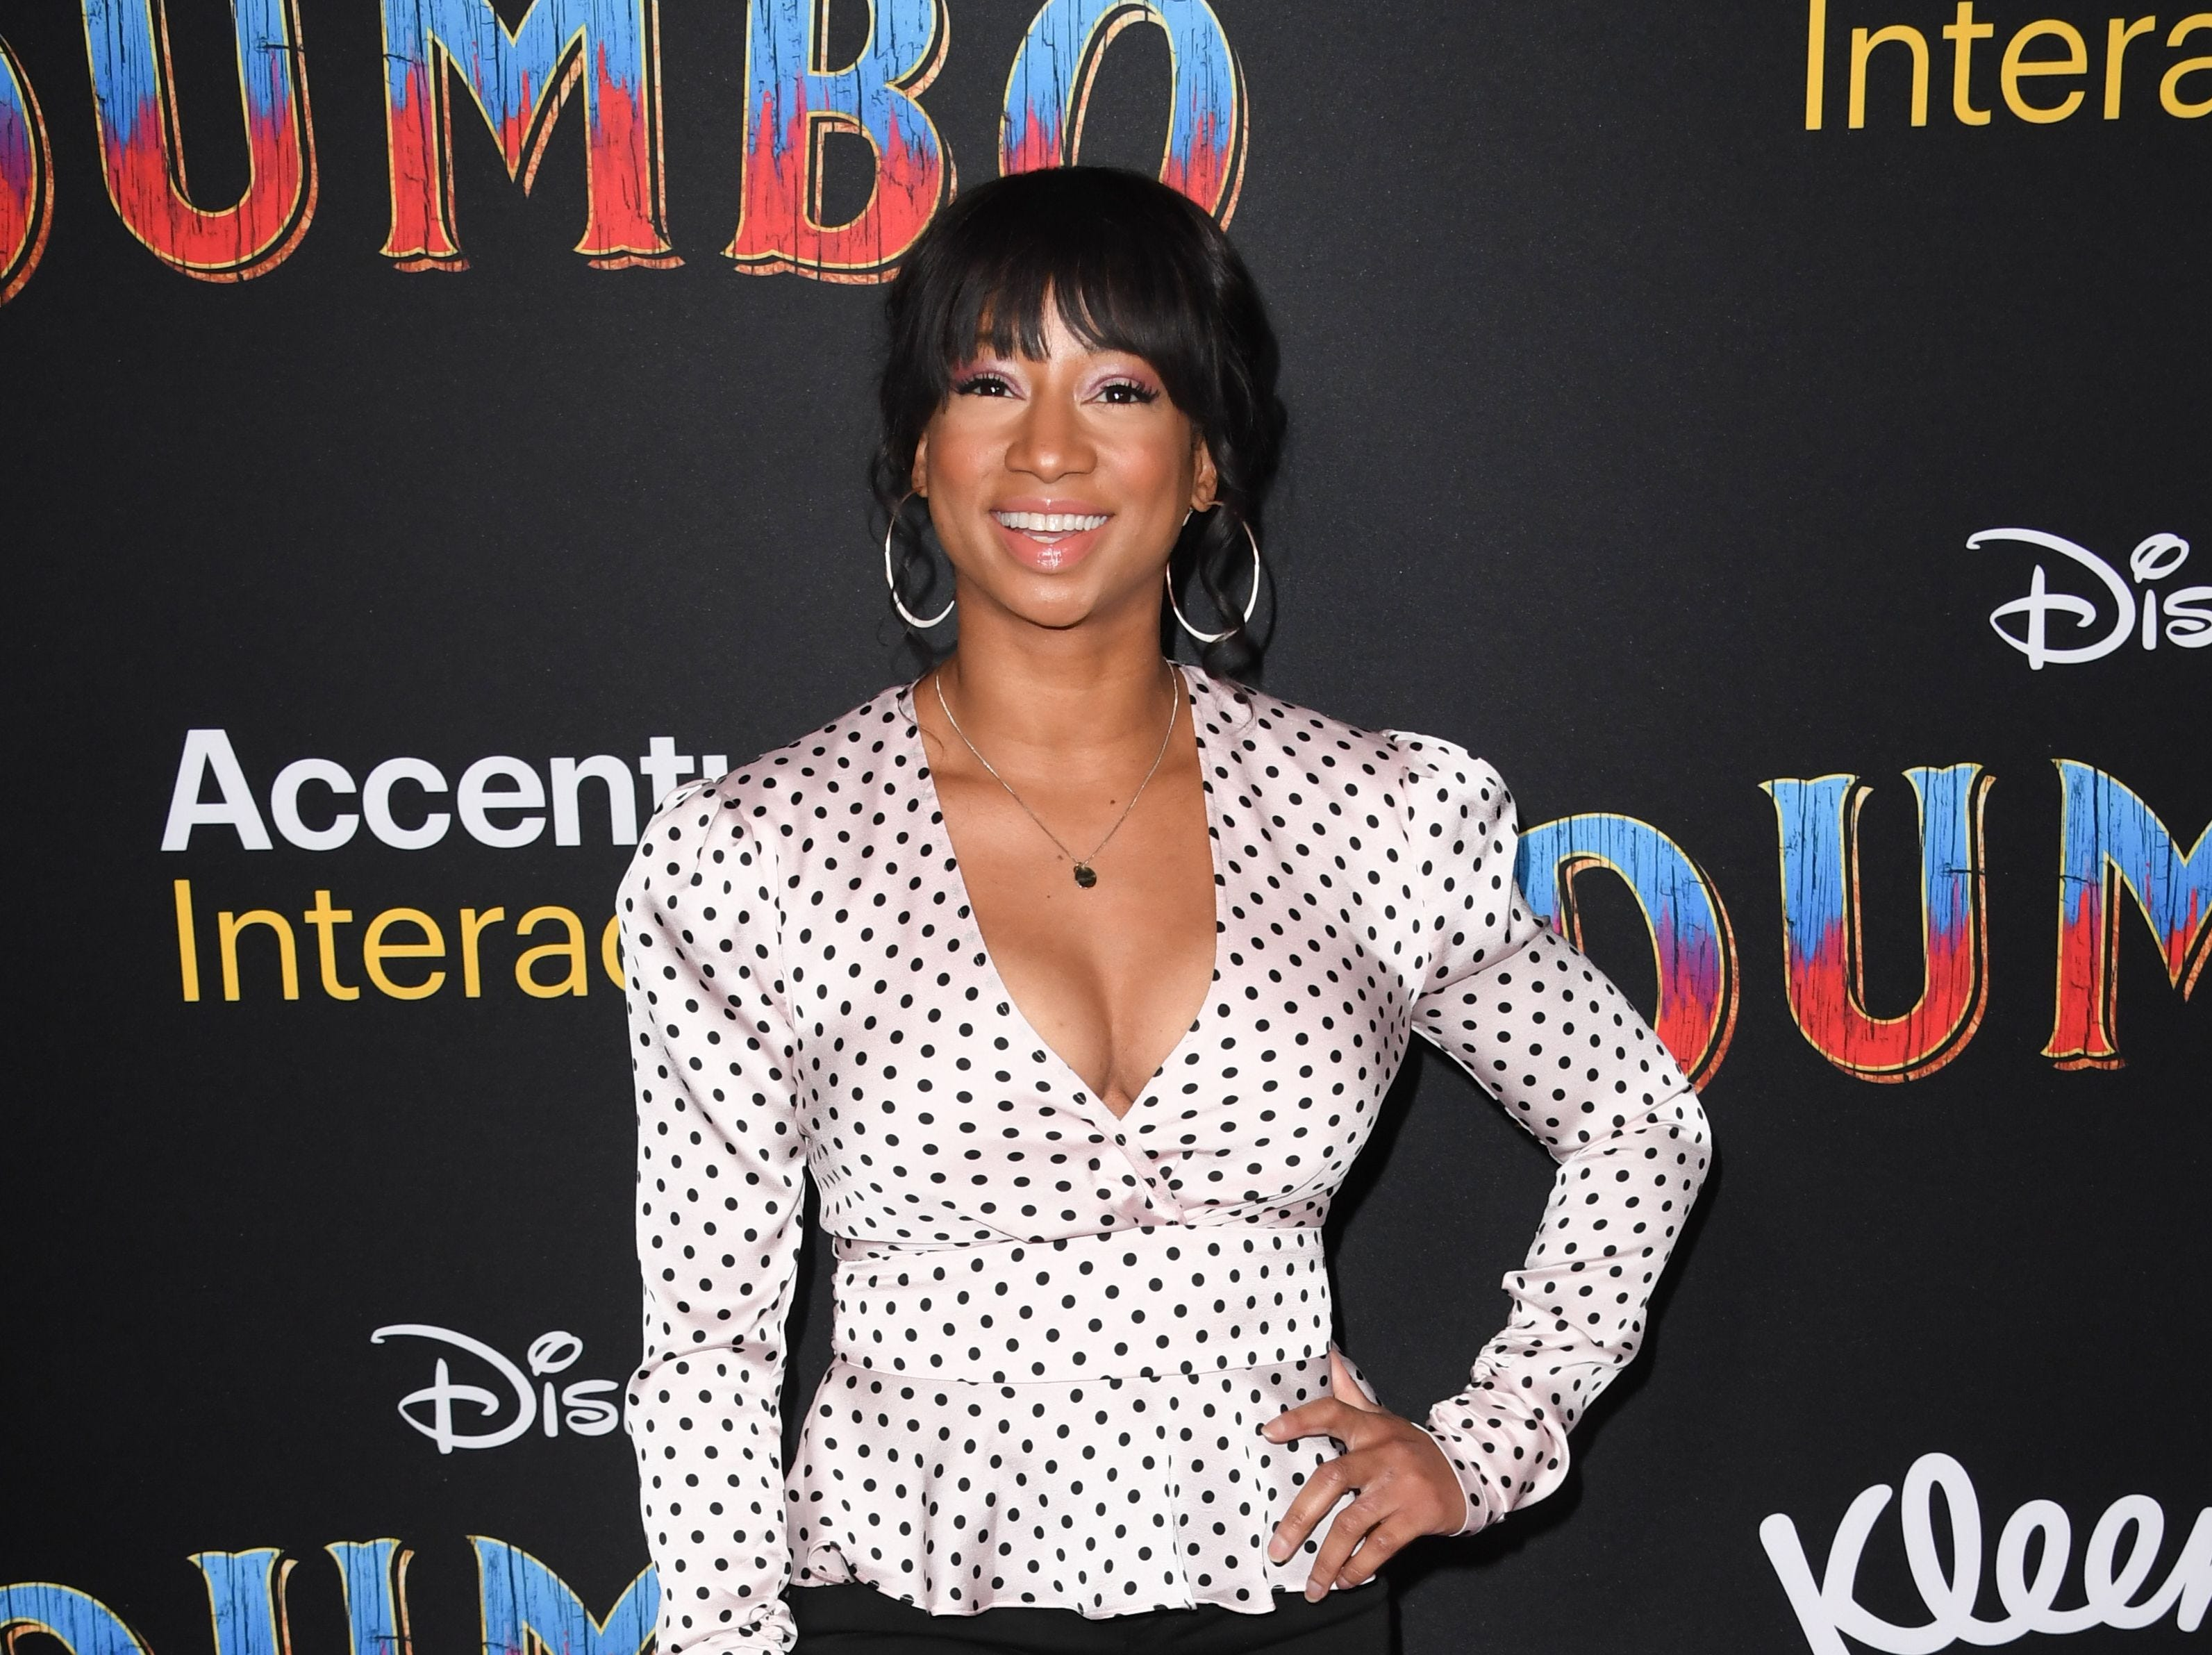 """US actress Monique Coleman arrives for the world premiere of Disney's """"Dumbo"""" at El Capitan theatre on March 11, 2019 in Hollywood. (Photo by Robyn Beck / AFP)ROBYN BECK/AFP/Getty Images ORG XMIT: Premiere ORIG FILE ID: AFP_1EI2K1"""